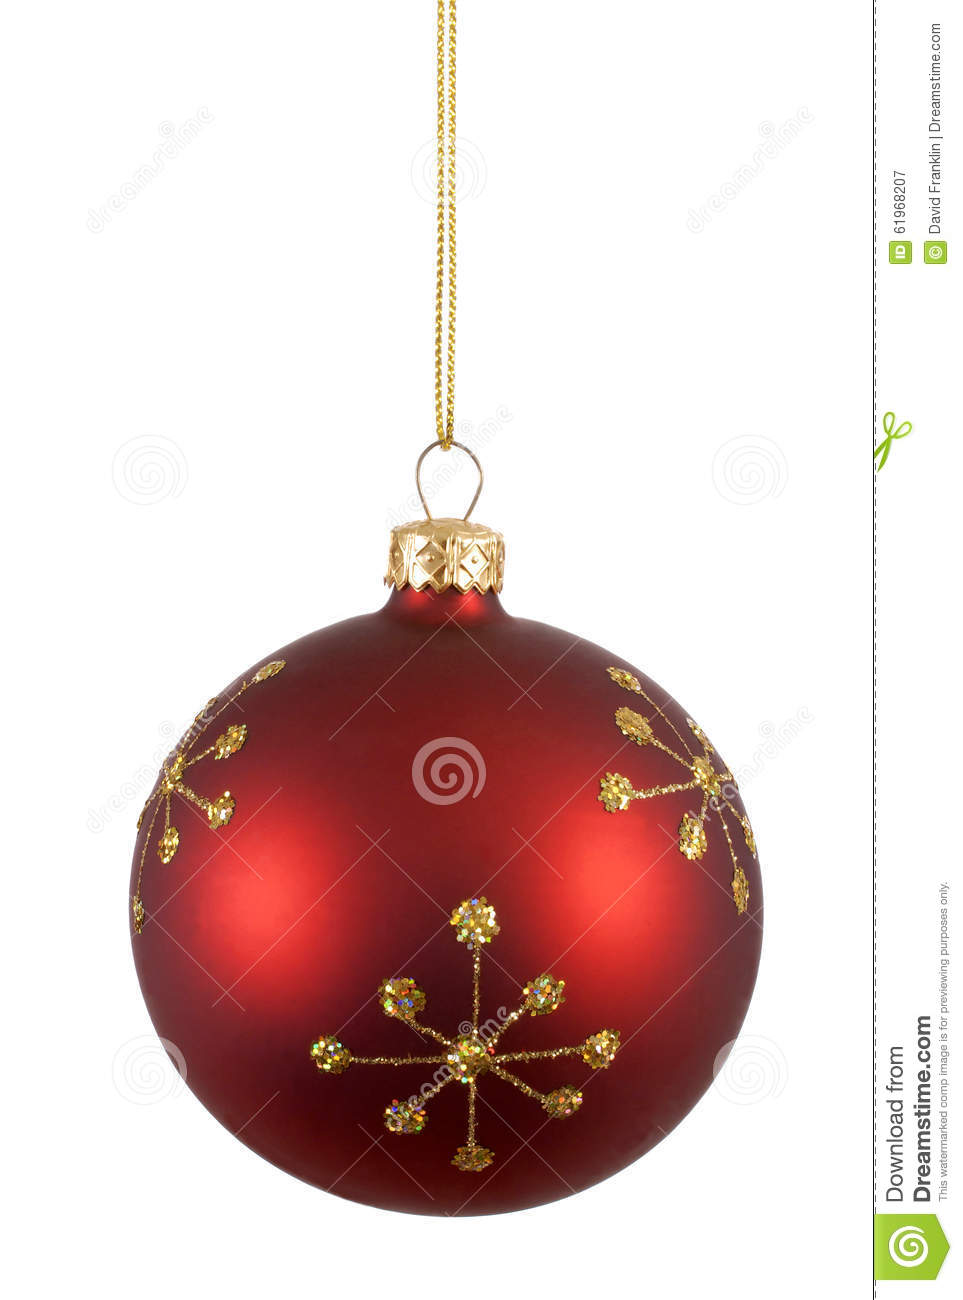 Christmas decoration and ornament pattern in gold cartoon